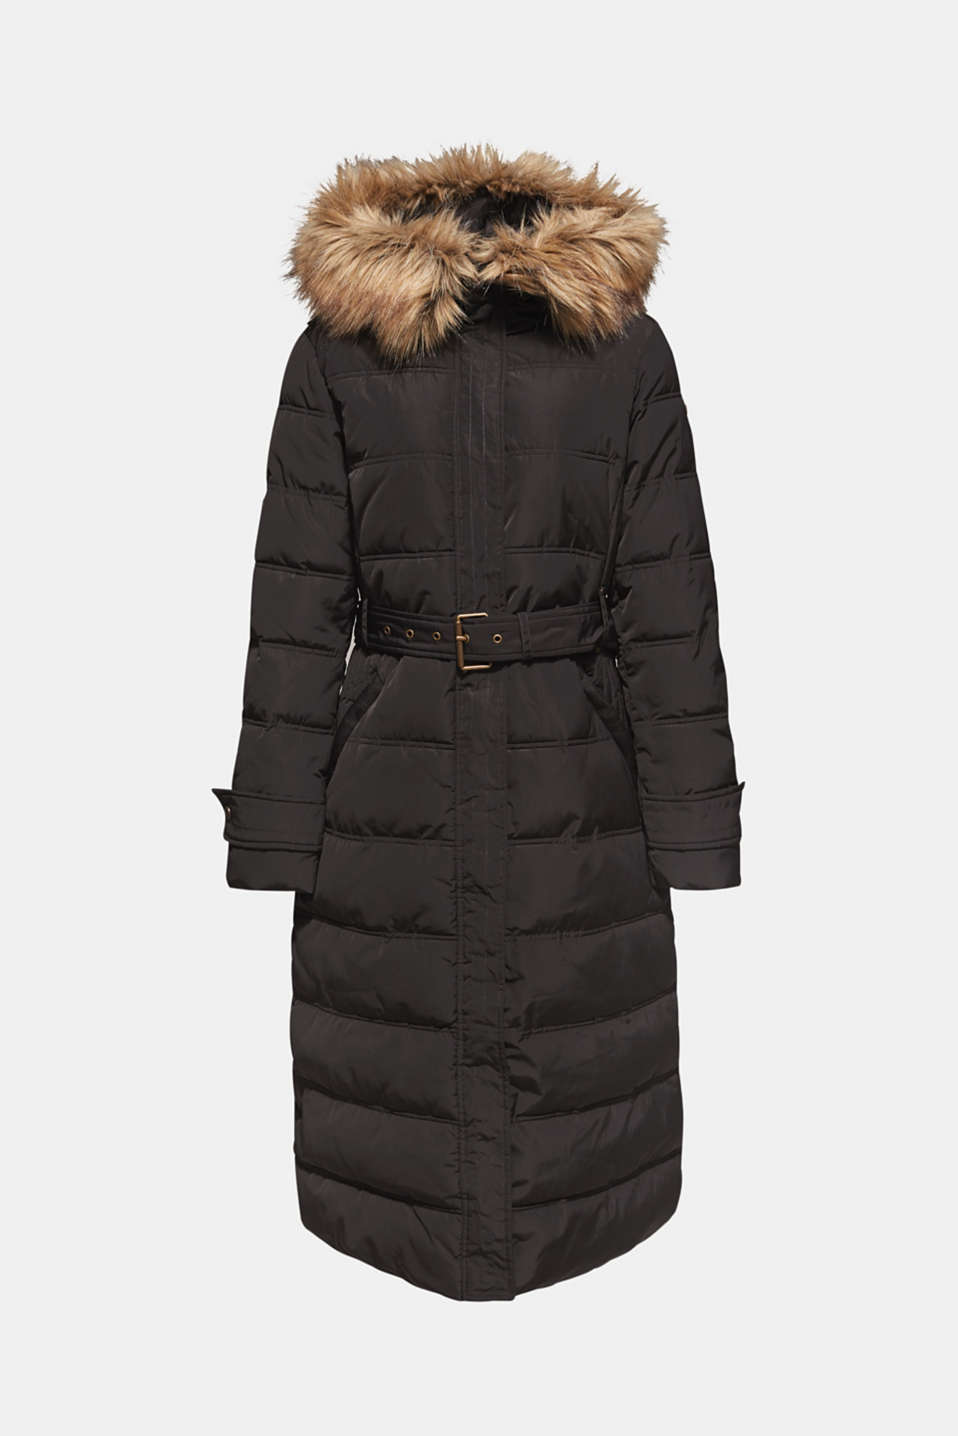 Quilted coat with a faux fur hood, DARK TEAL GREEN, detail image number 7